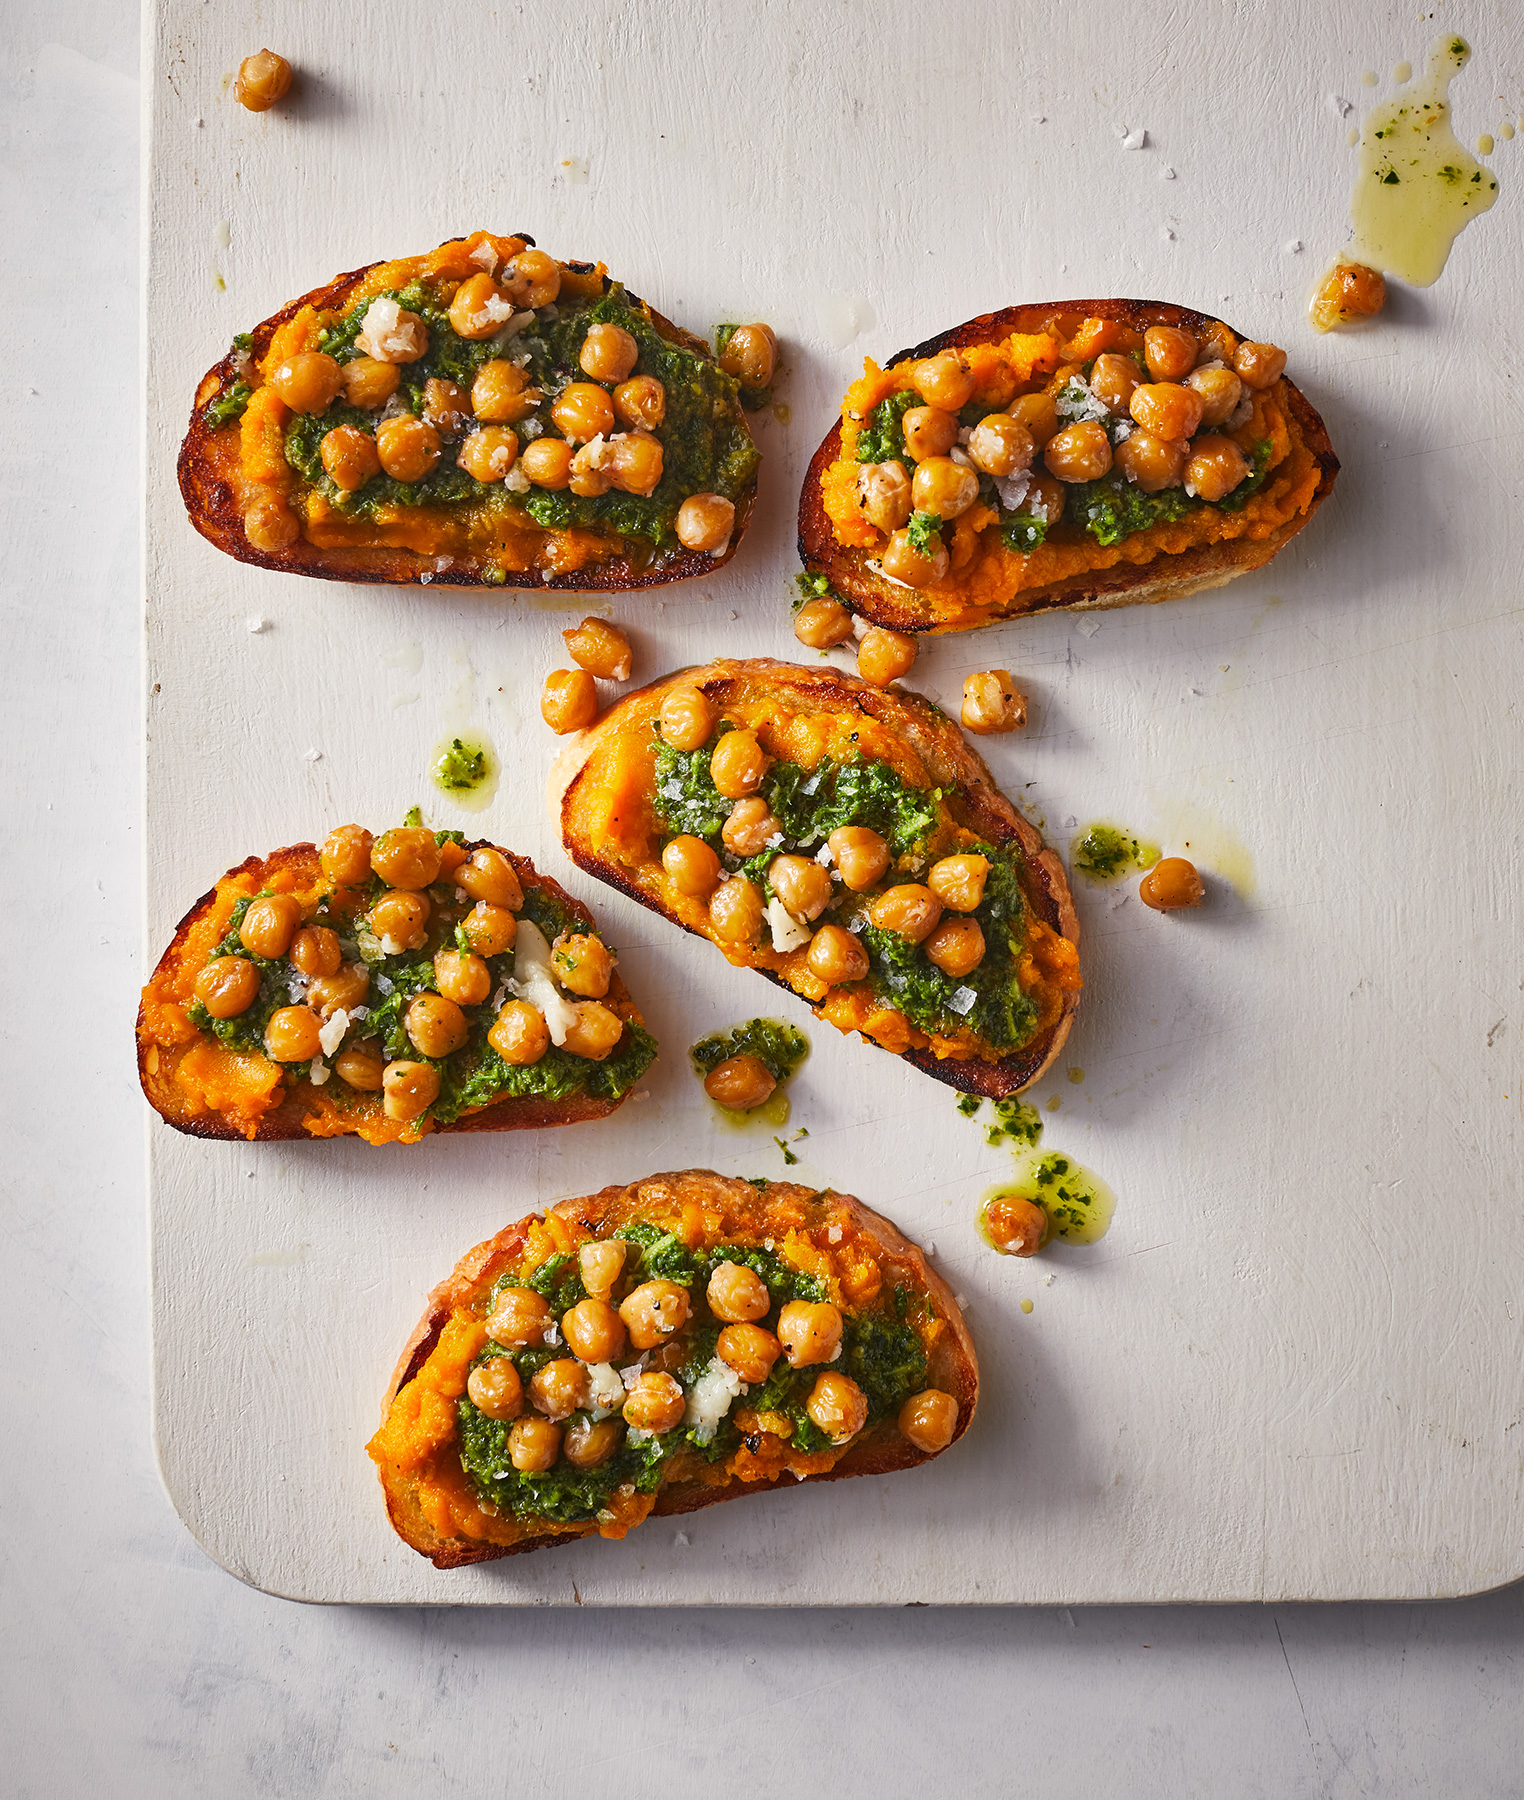 Easy Dinner Recipes: Garlic Toast With Squash, Pesto, and Olive-Oil Braised Chickpeas